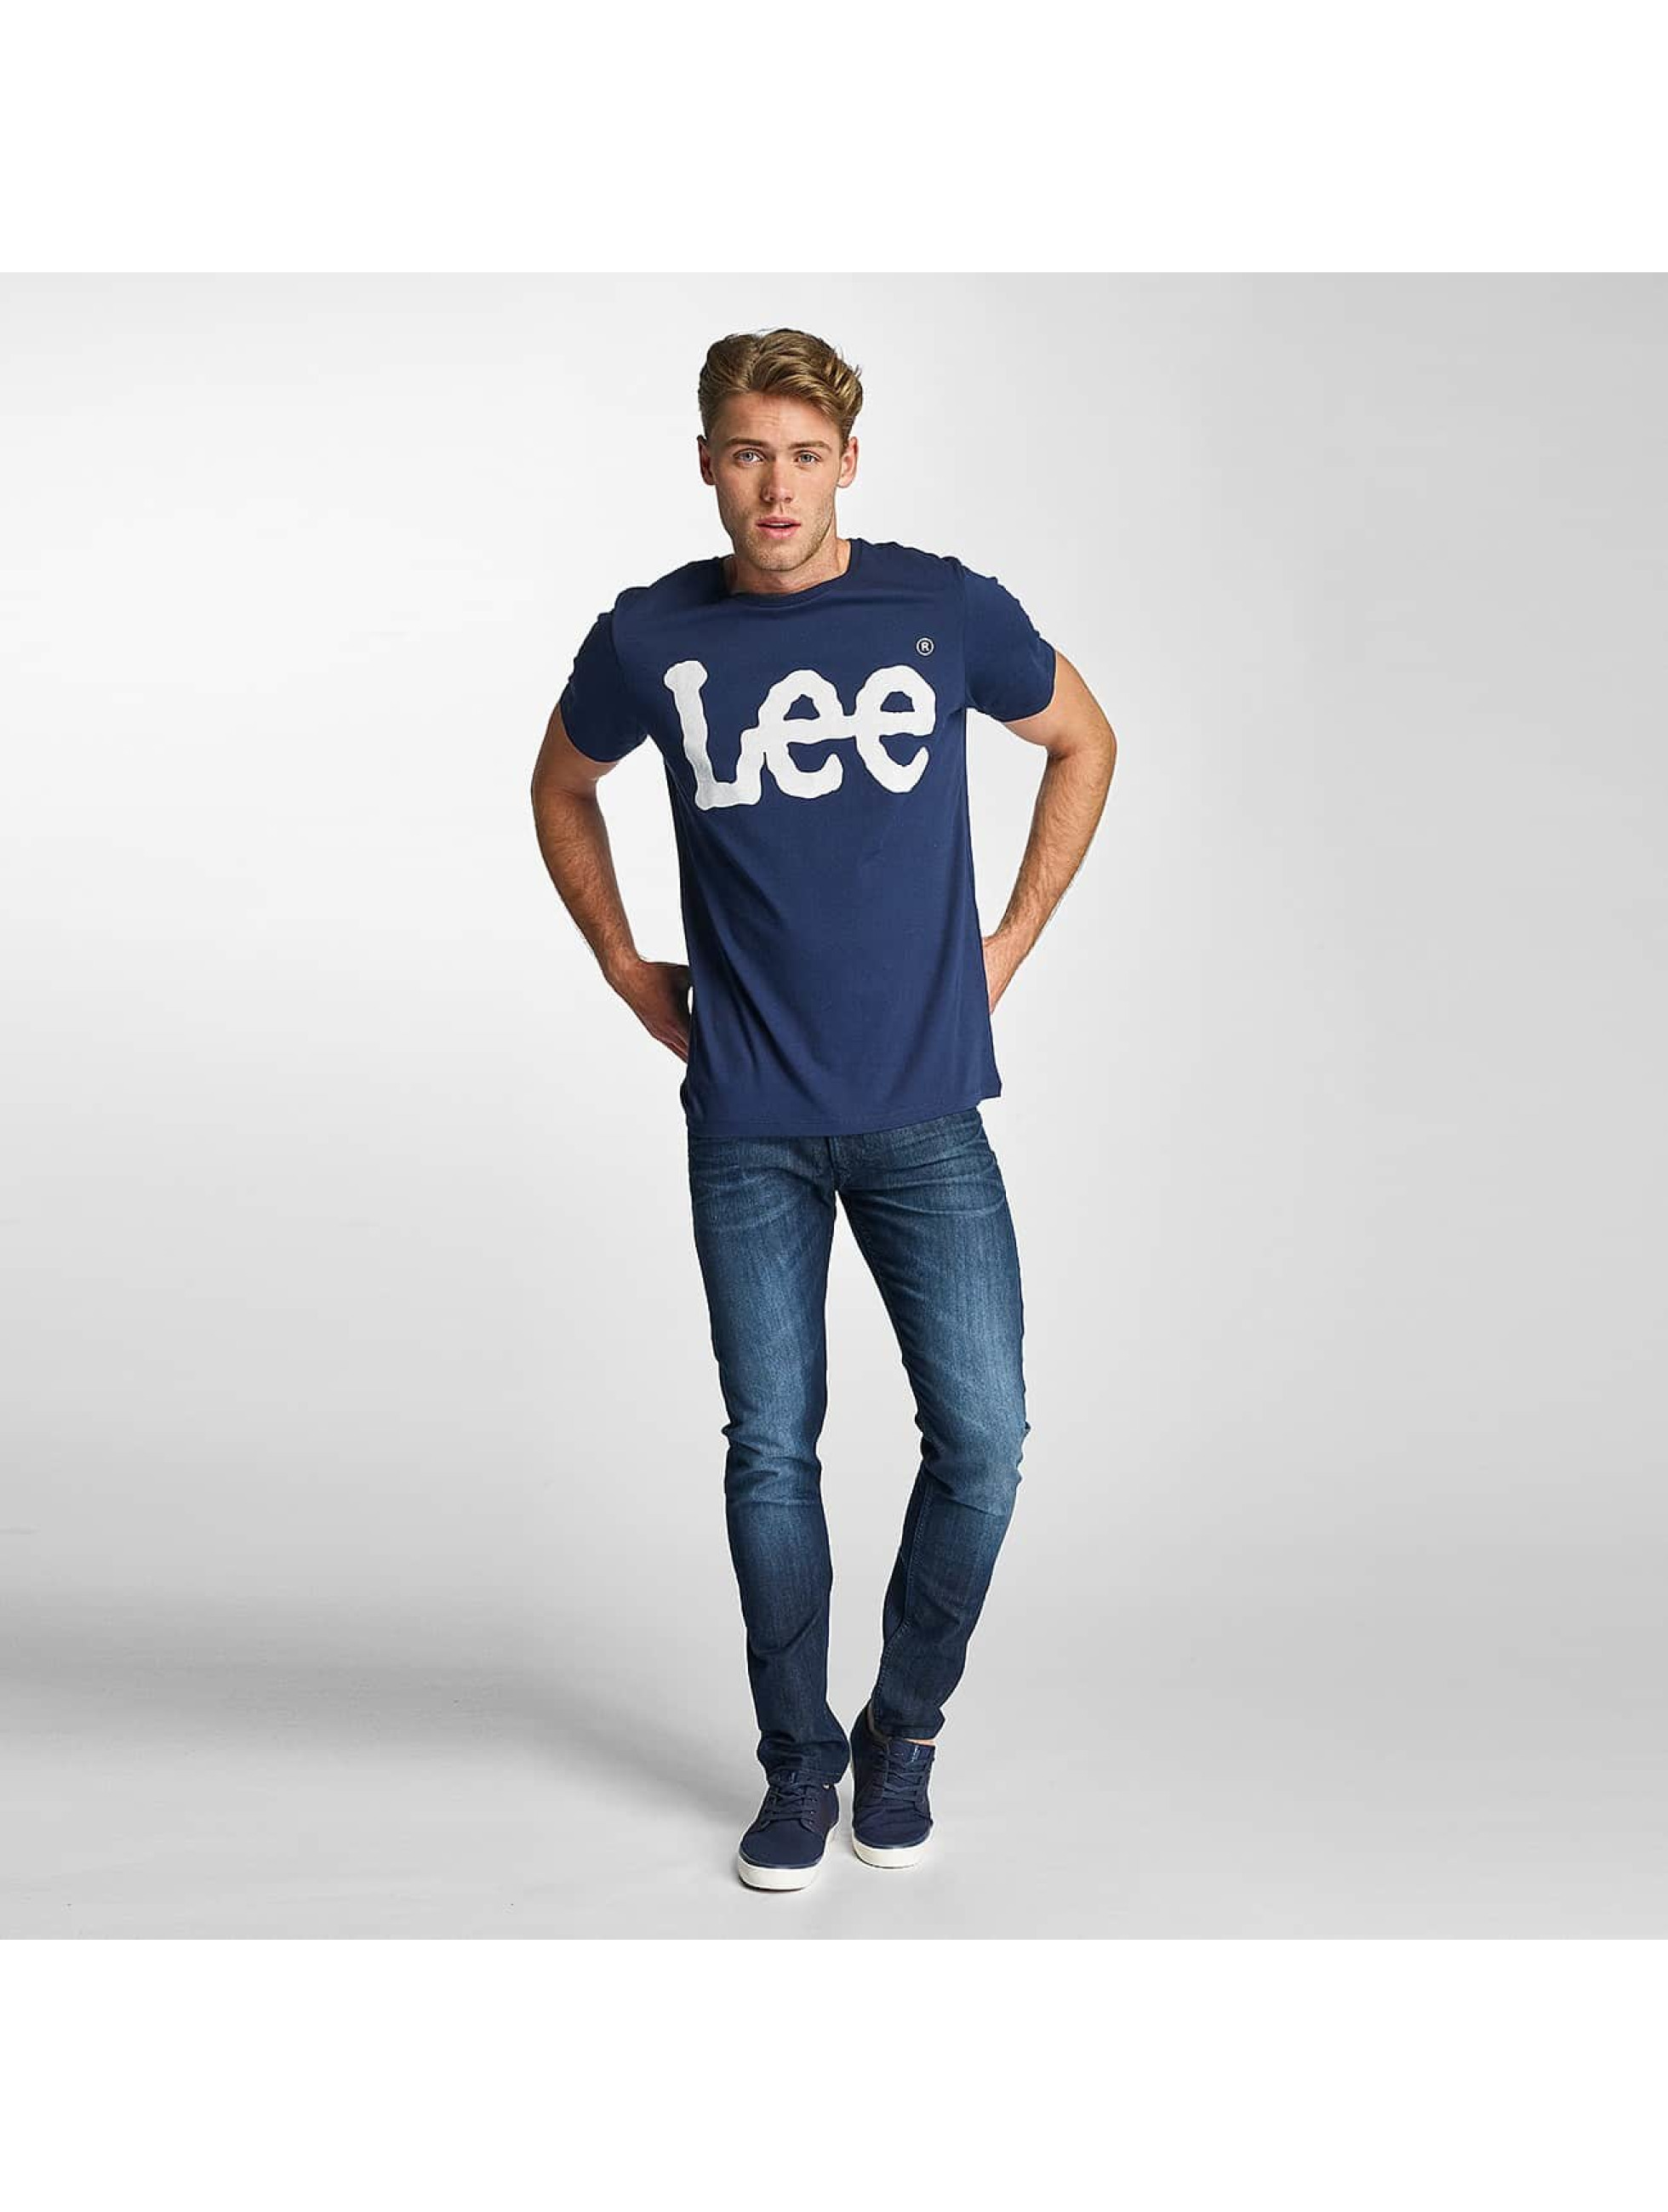 Lee t-shirt Logo blauw